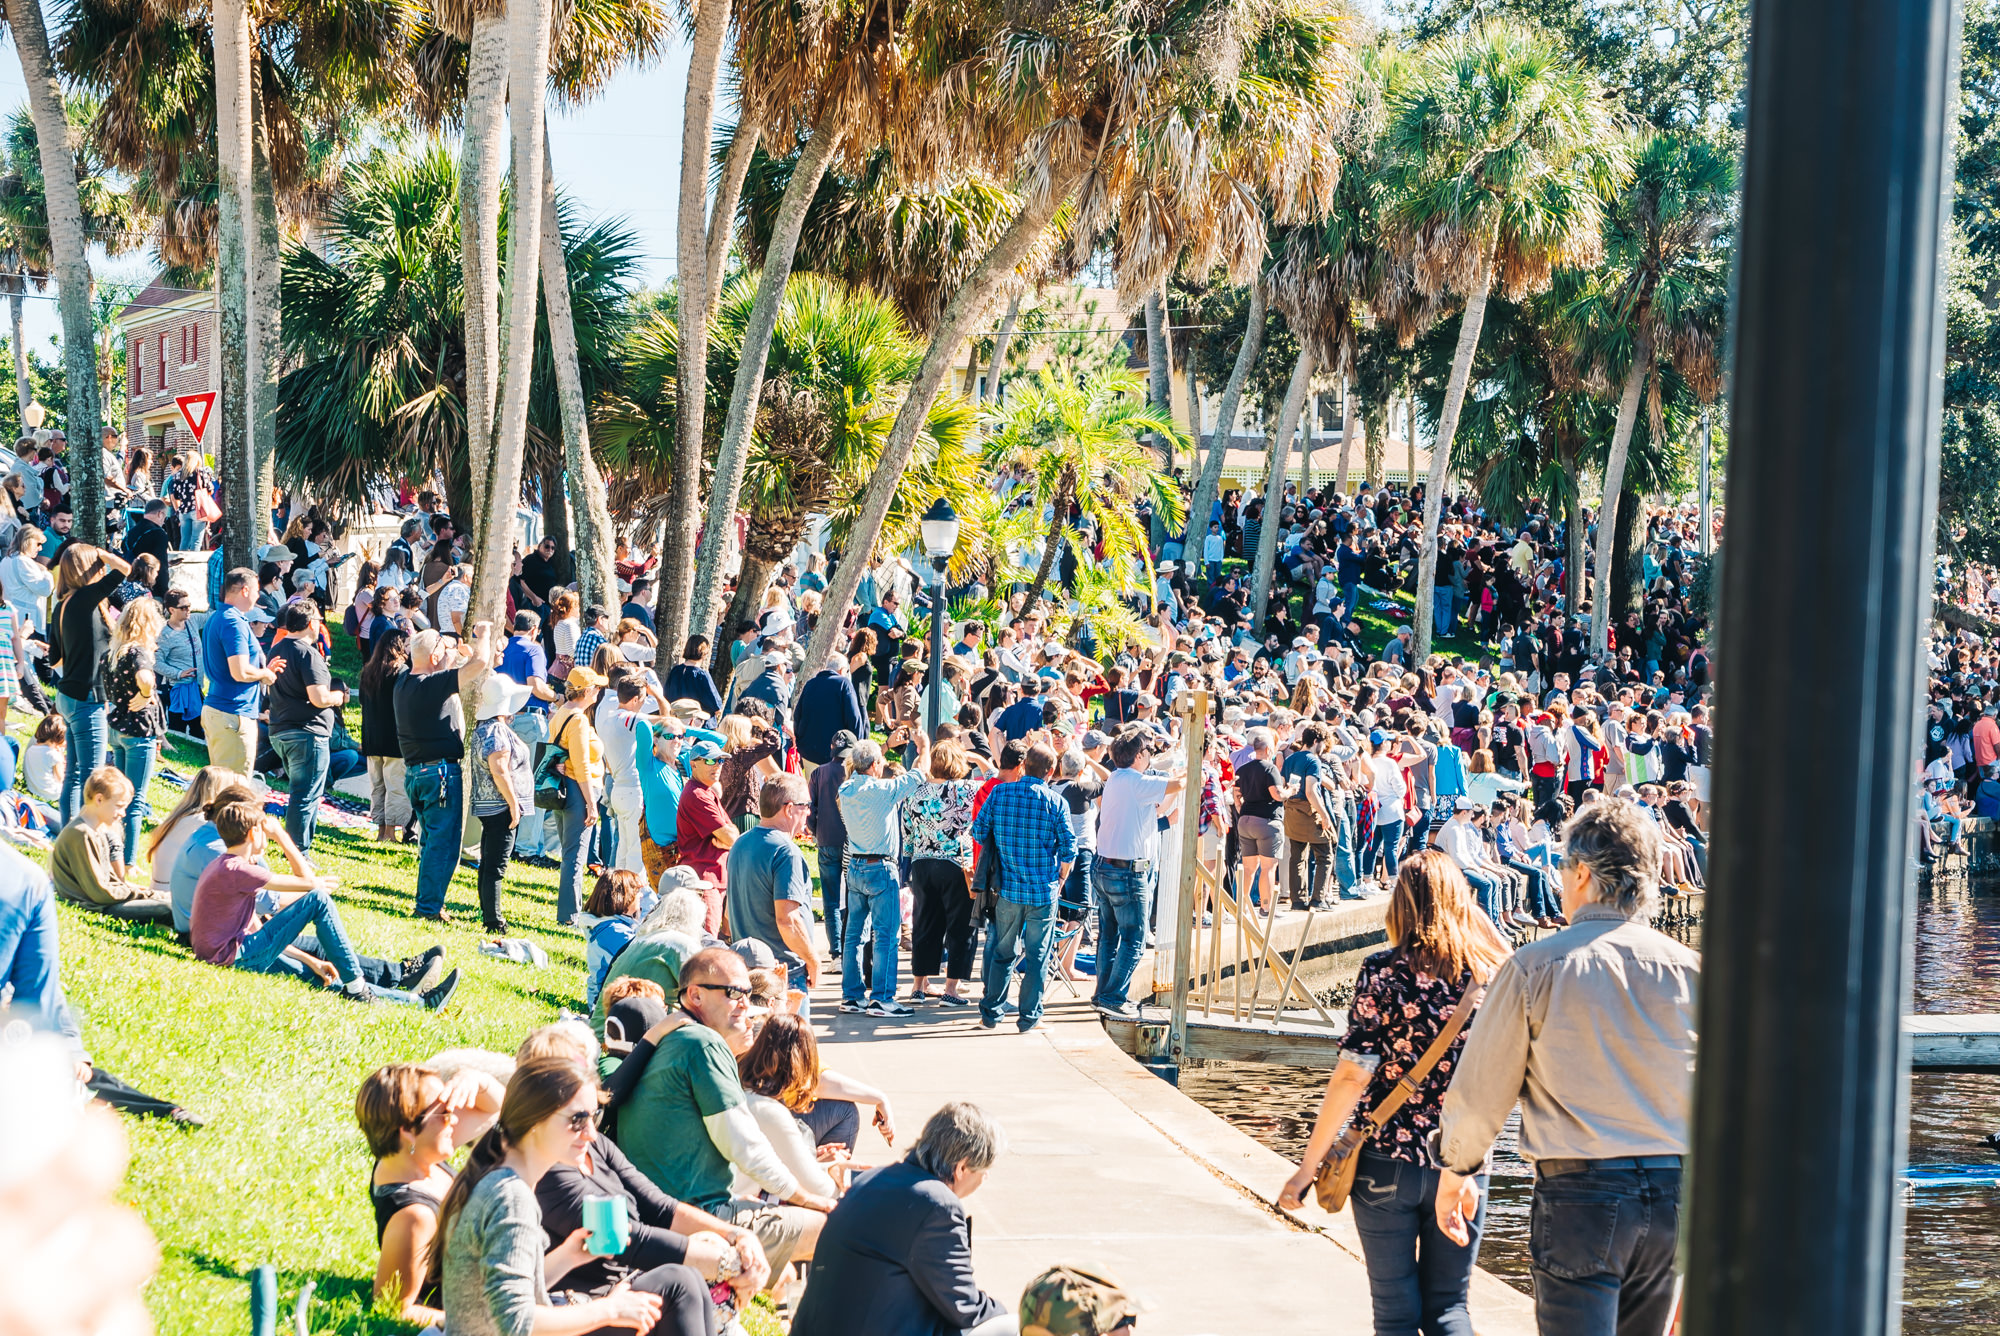 Thousands of people at Spring Bayou in Tarpon Springs for Ephiphany